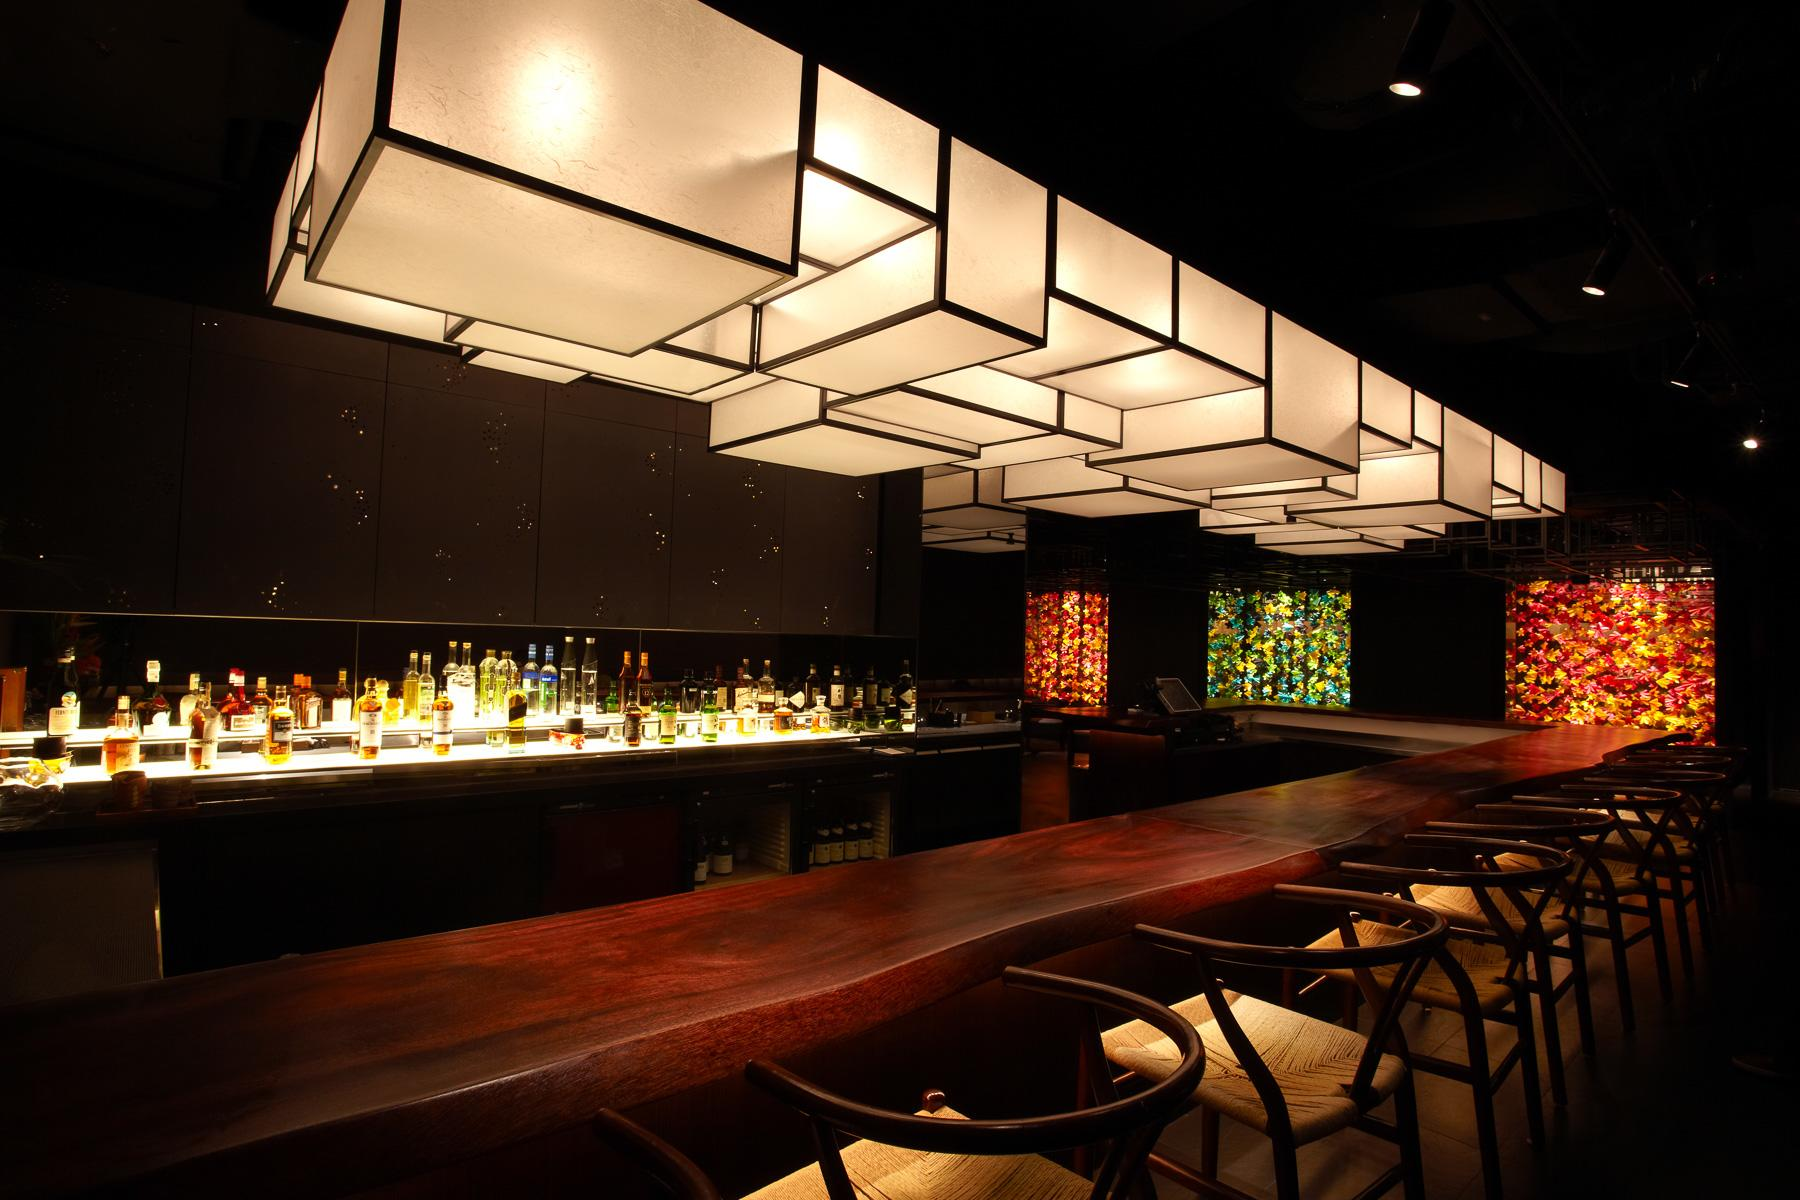 10 Best Bars in Singapore for Delicious Drinks